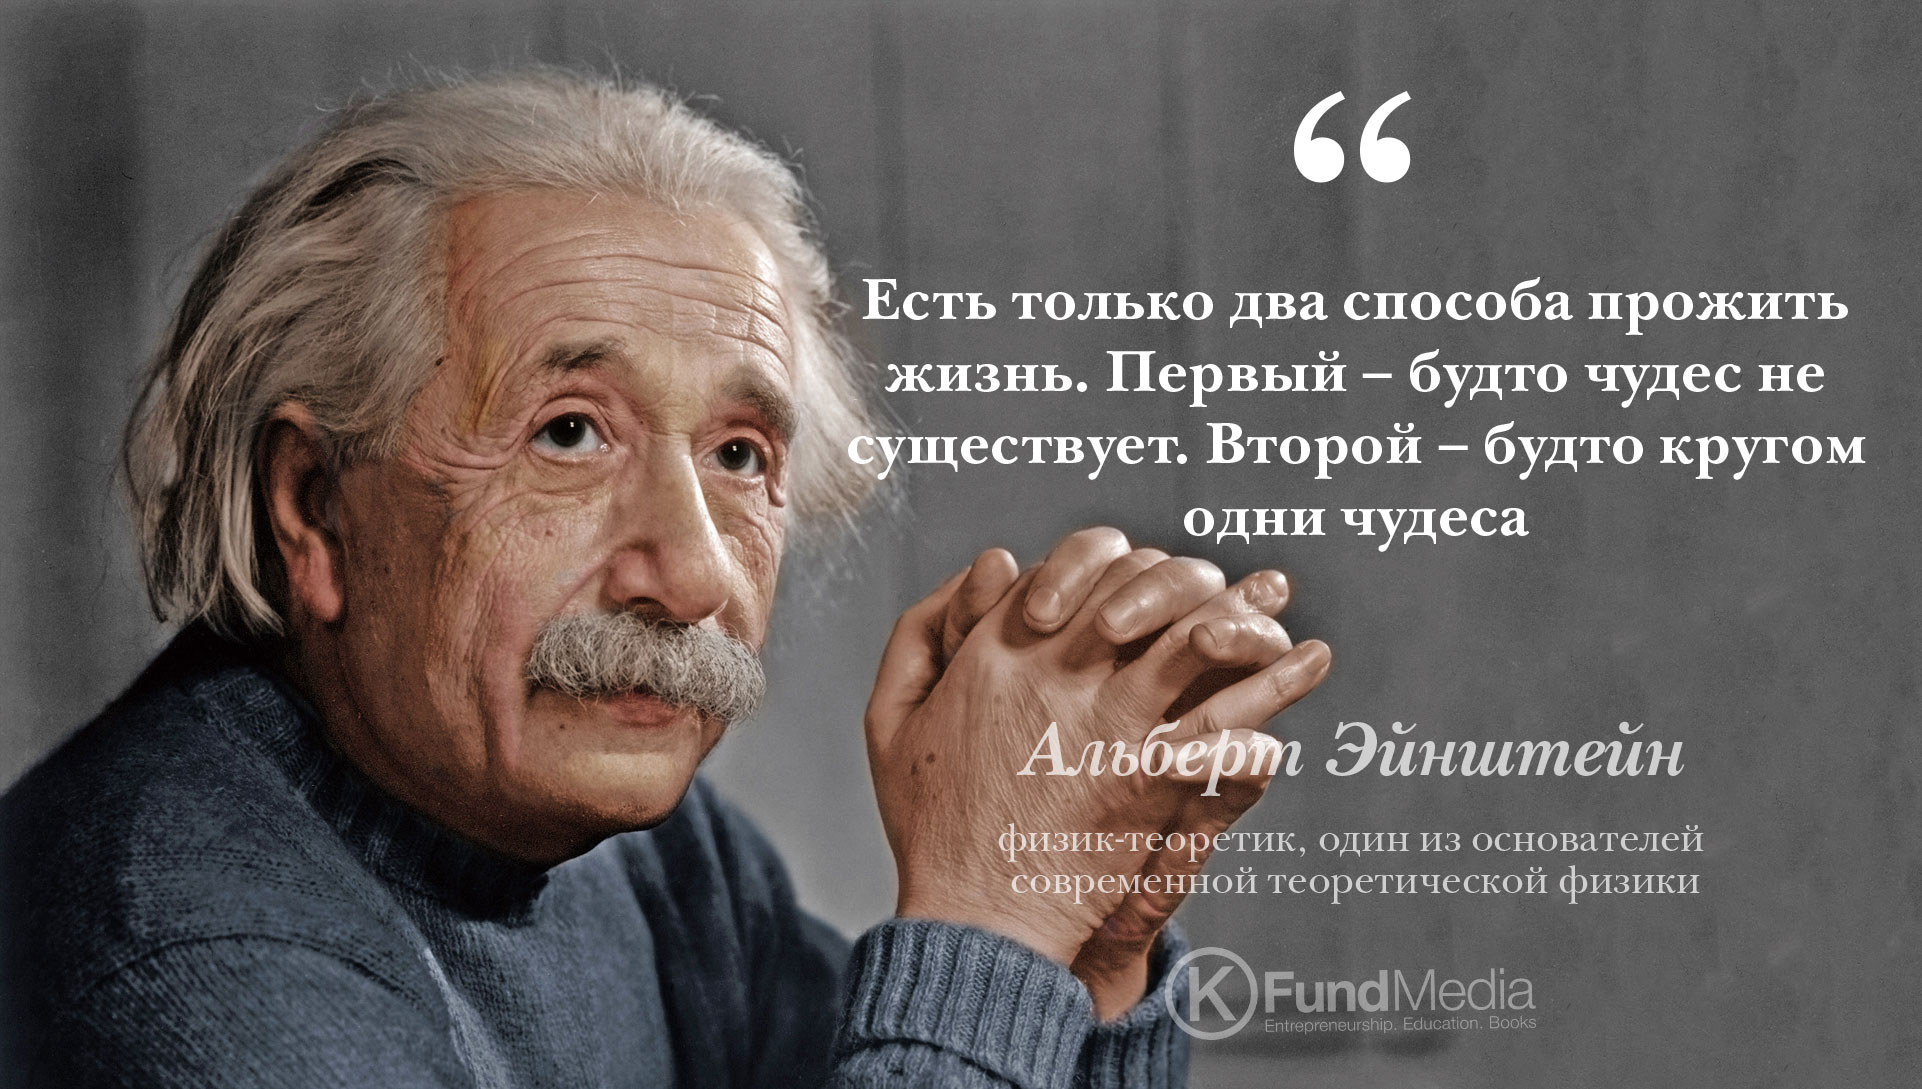 albert einstein the miracle mind There are only two ways to live your life one is as though nothing is a miracle the other is as though everything is a miracle.